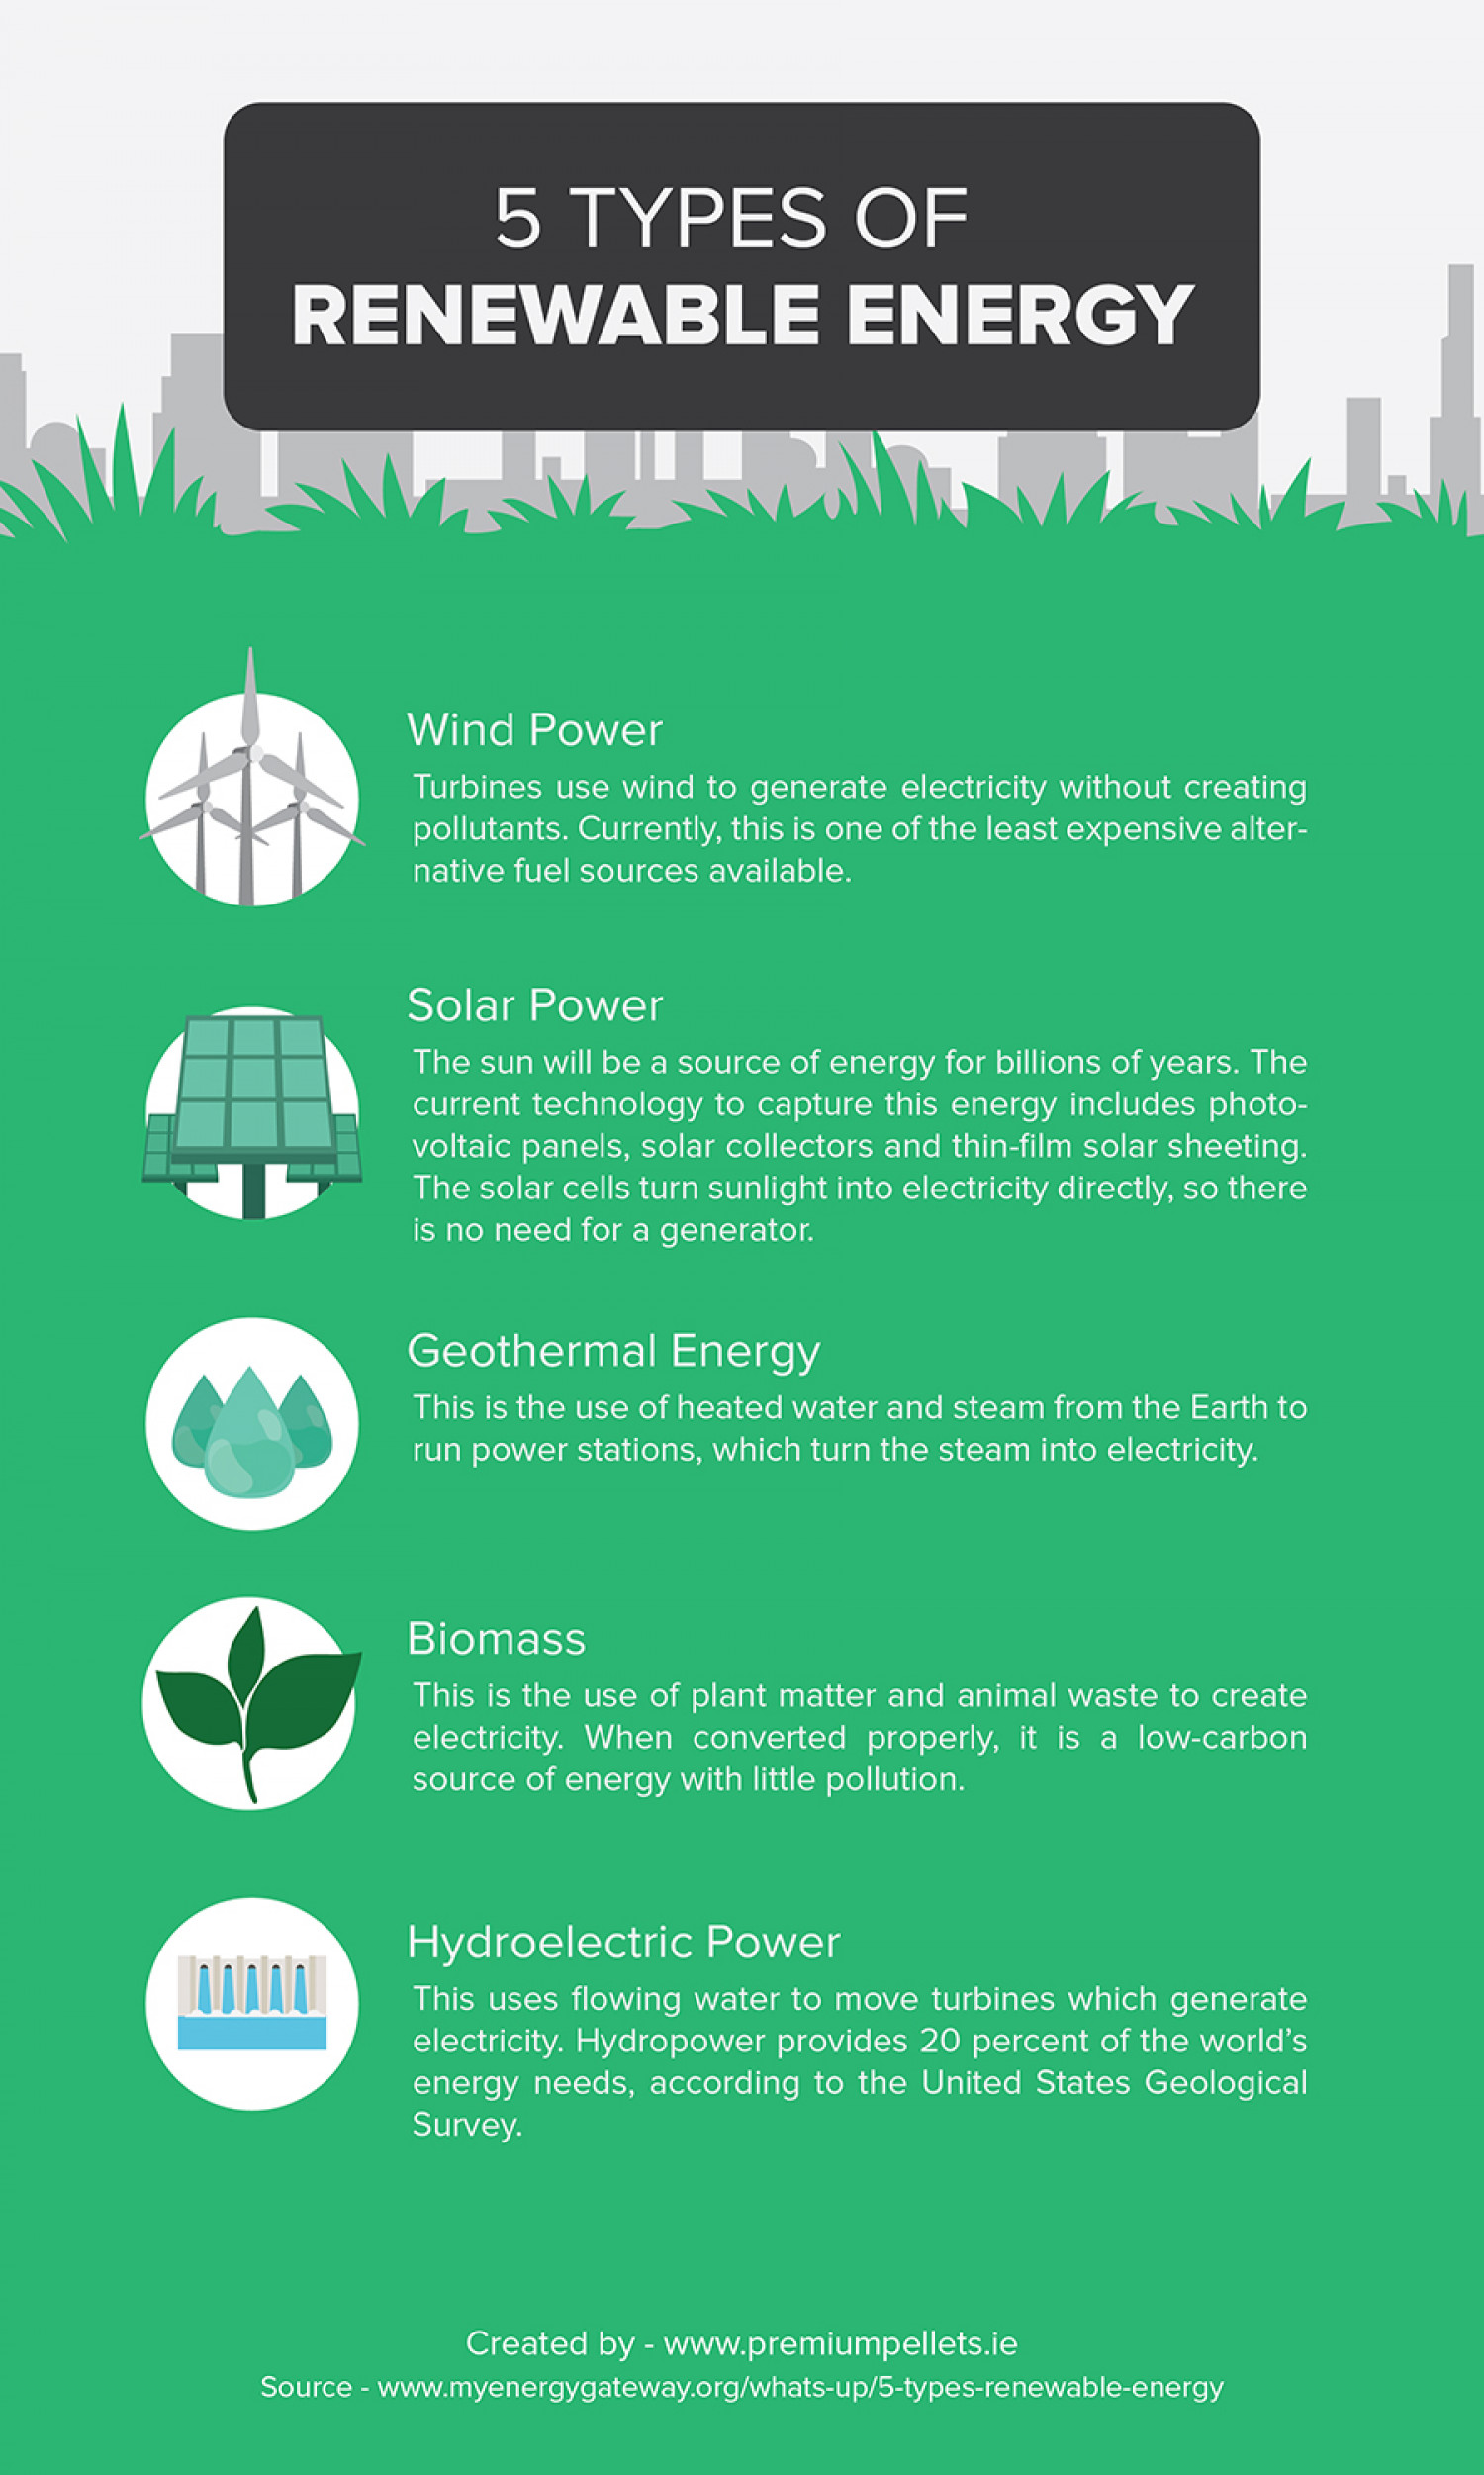 5 Types of Renewable Energy Infographic